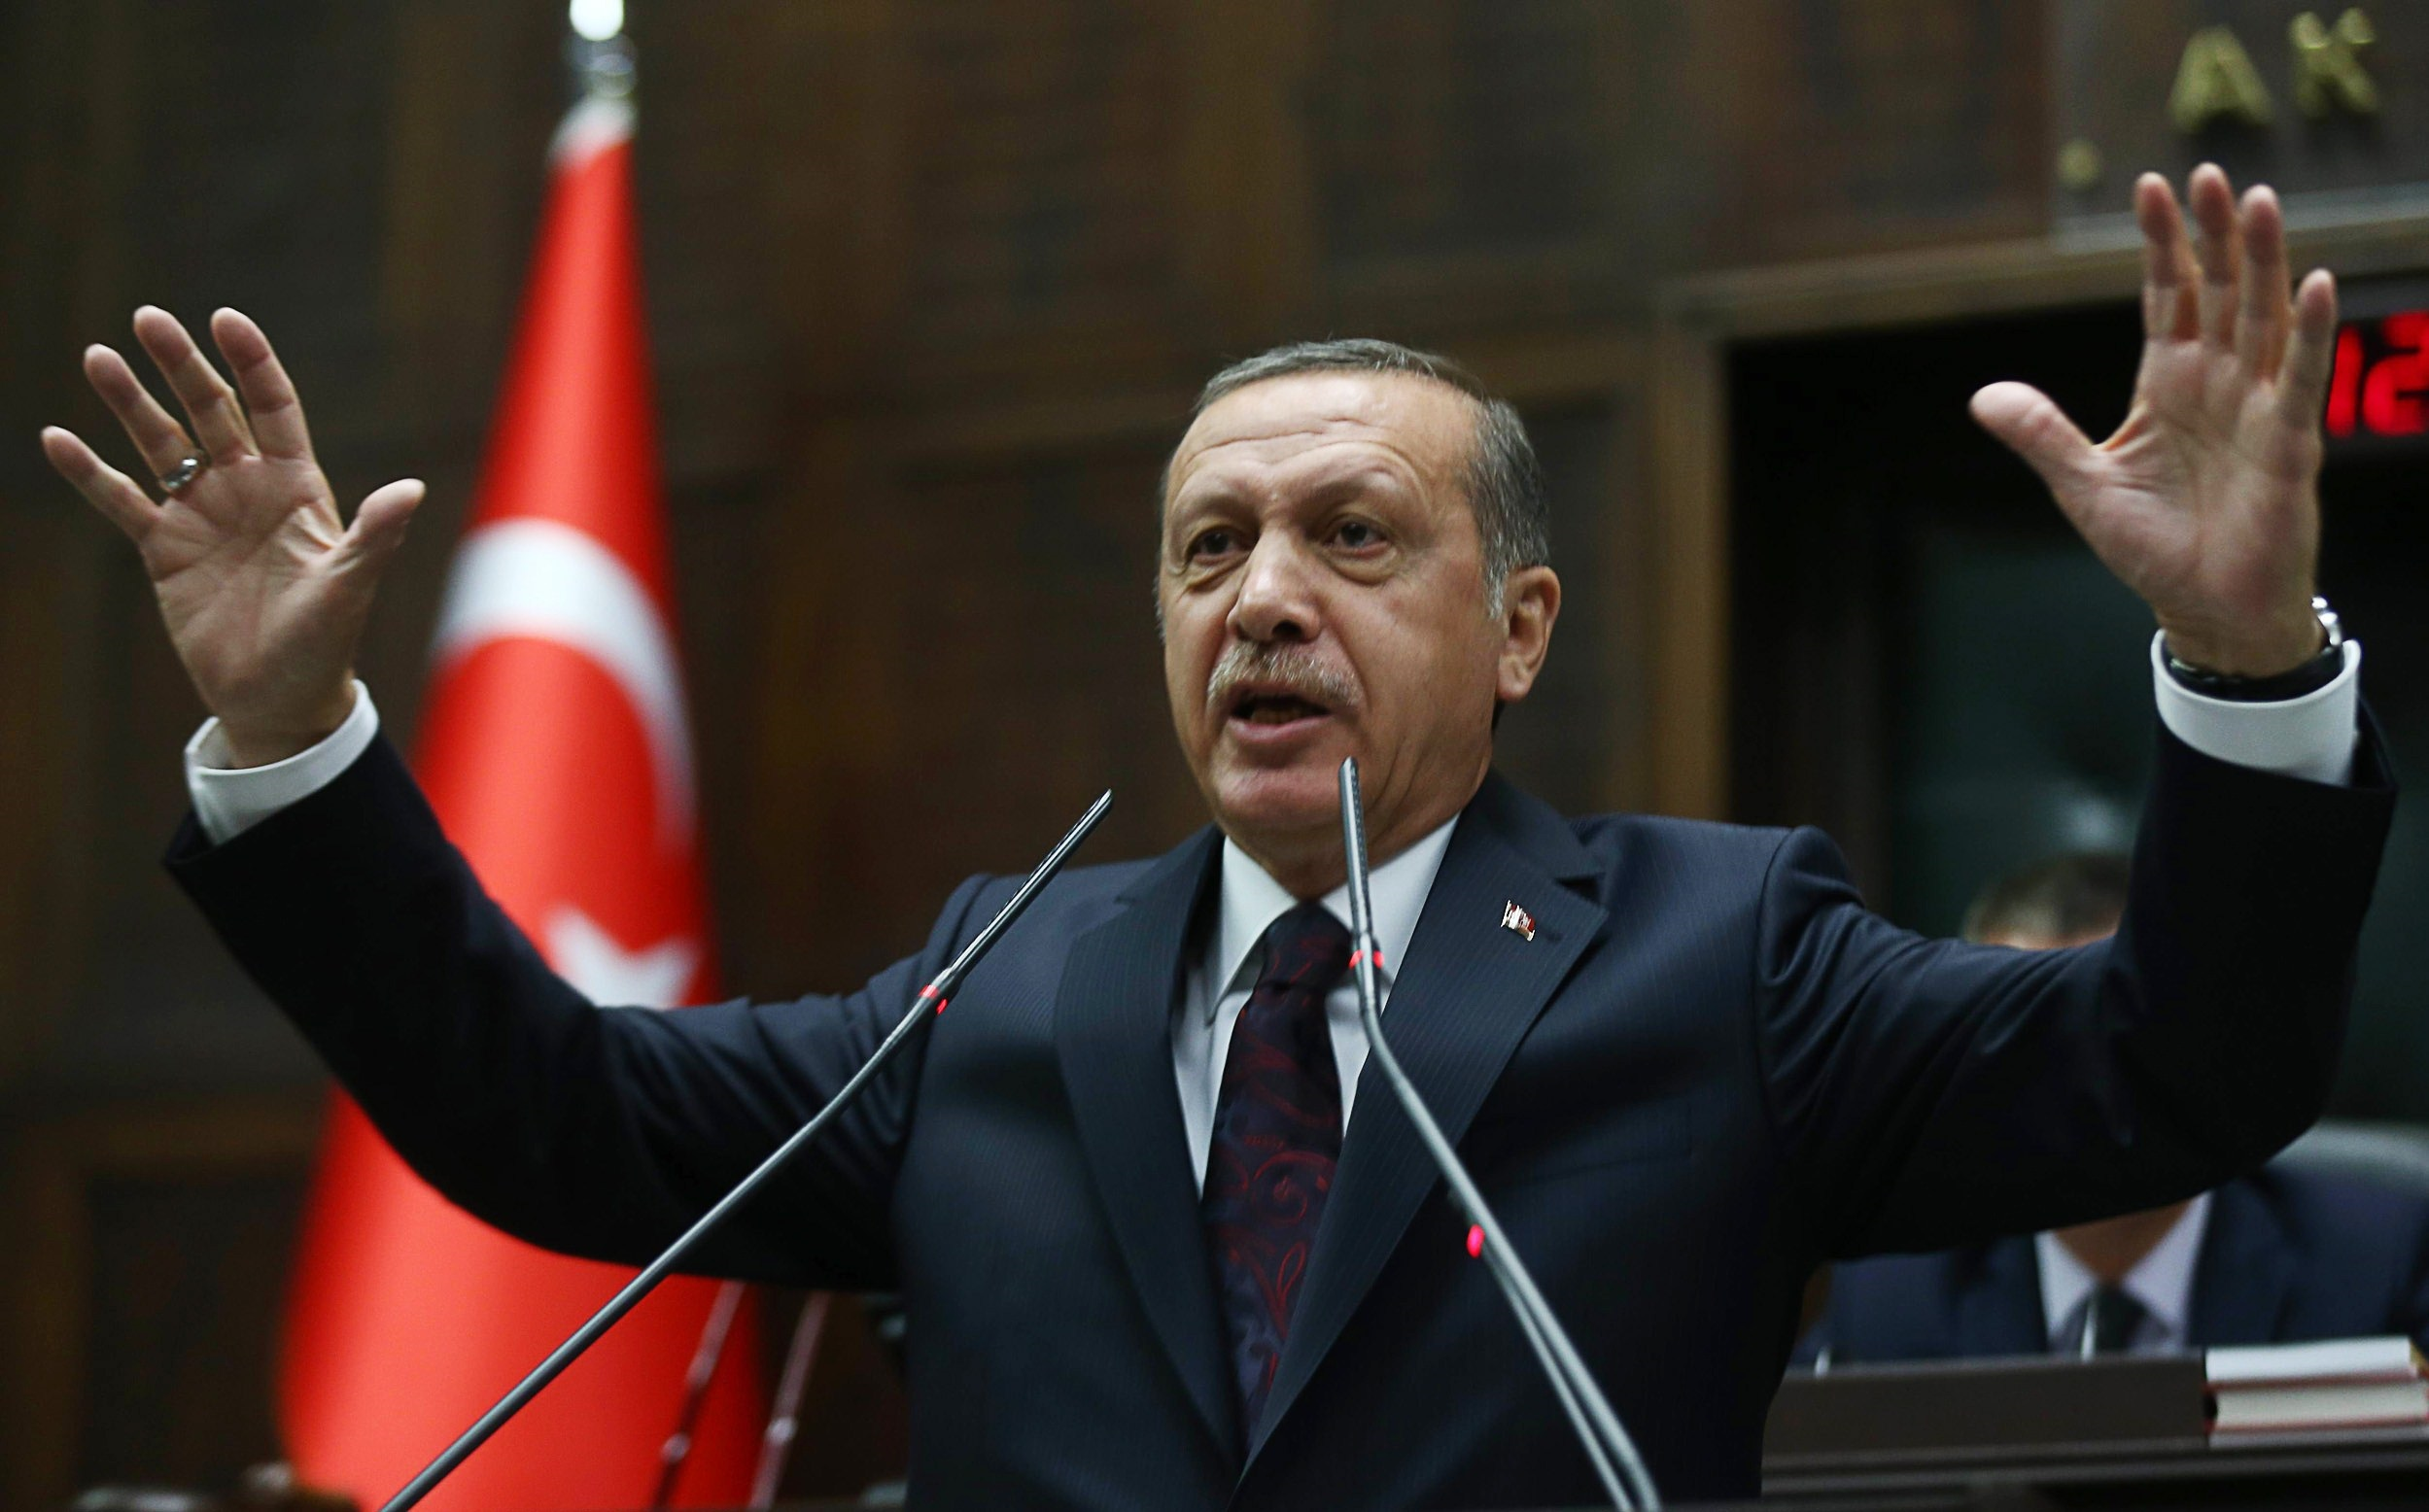 Turkey's Prime Minister Recep Tayyip Erdogan speaks to members of parliament from his ruling Justice and Development (AKP) Party during a meeting at the Turkish parliament in Ankara on 8 April 2014. (AFP PHOTO )